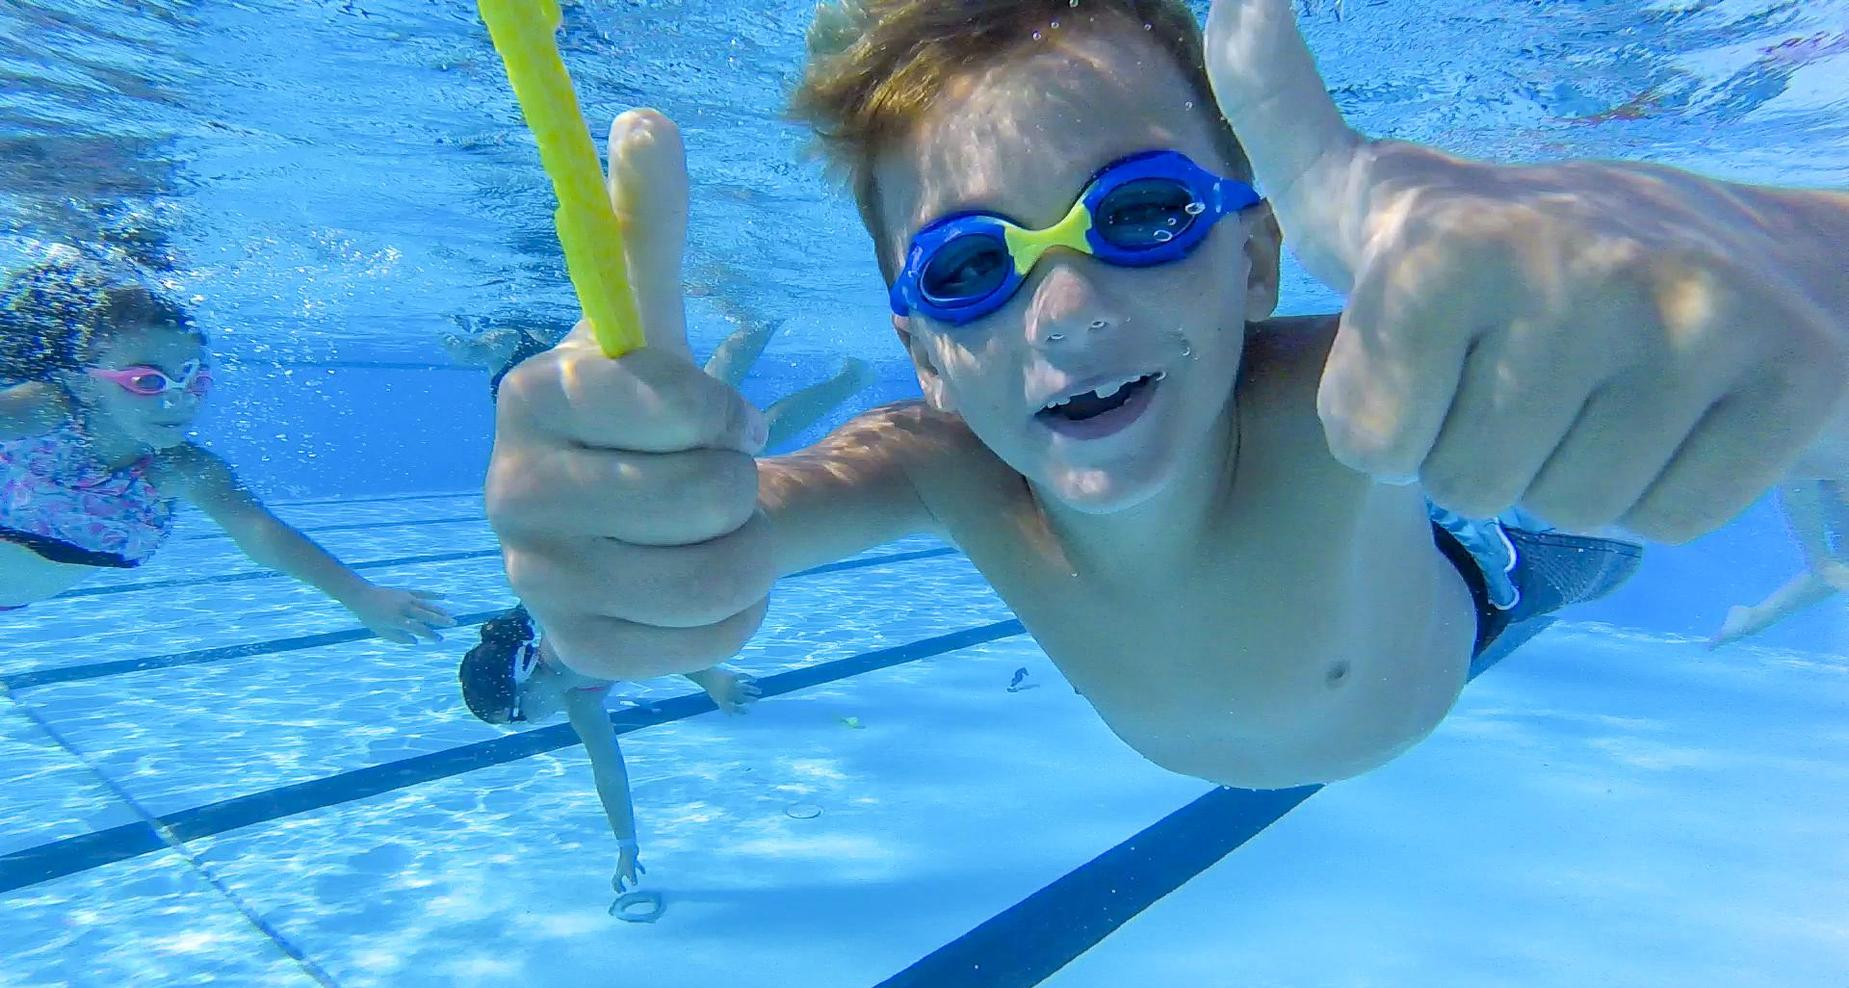 2nd grader showing thumbs up underwater.